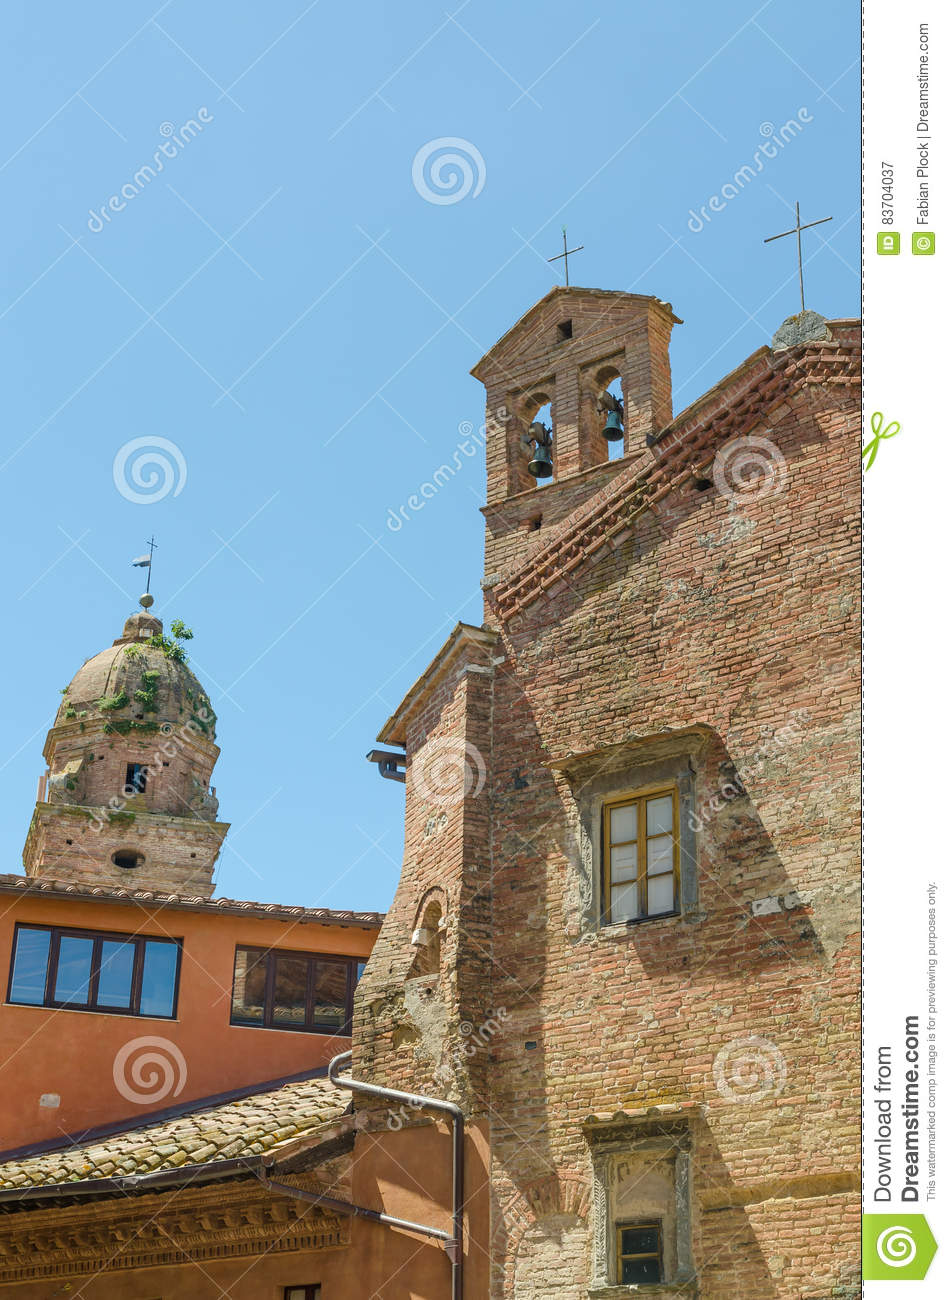 Two Historic Brick Churches With Towers In Contrast To More Modern Orange House In Siena, Italy, Europe Stock Photo